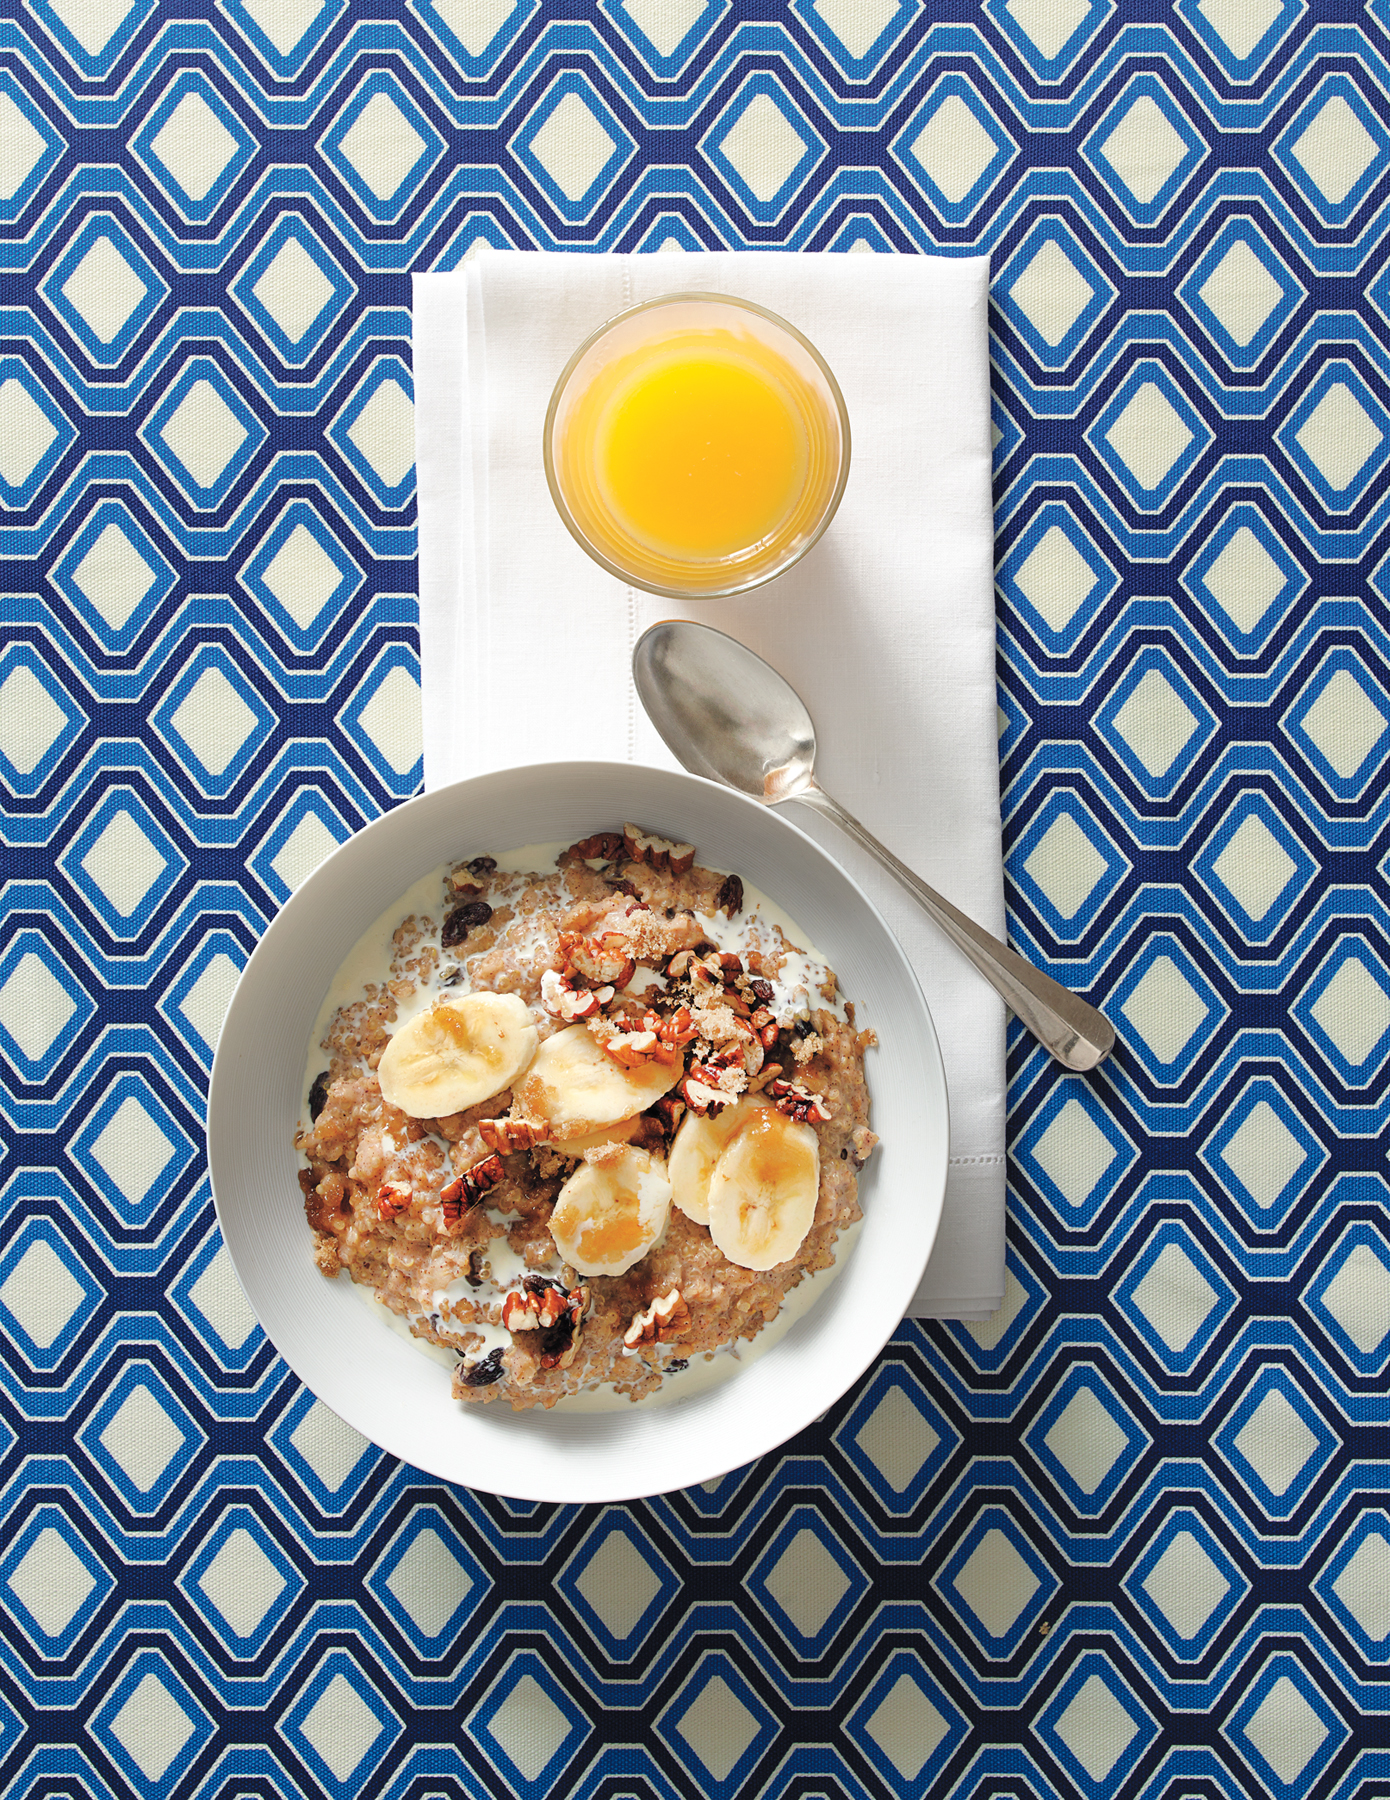 Thanksgiving Breakfast Ideas That Won't Leave You Too Full for Turkey